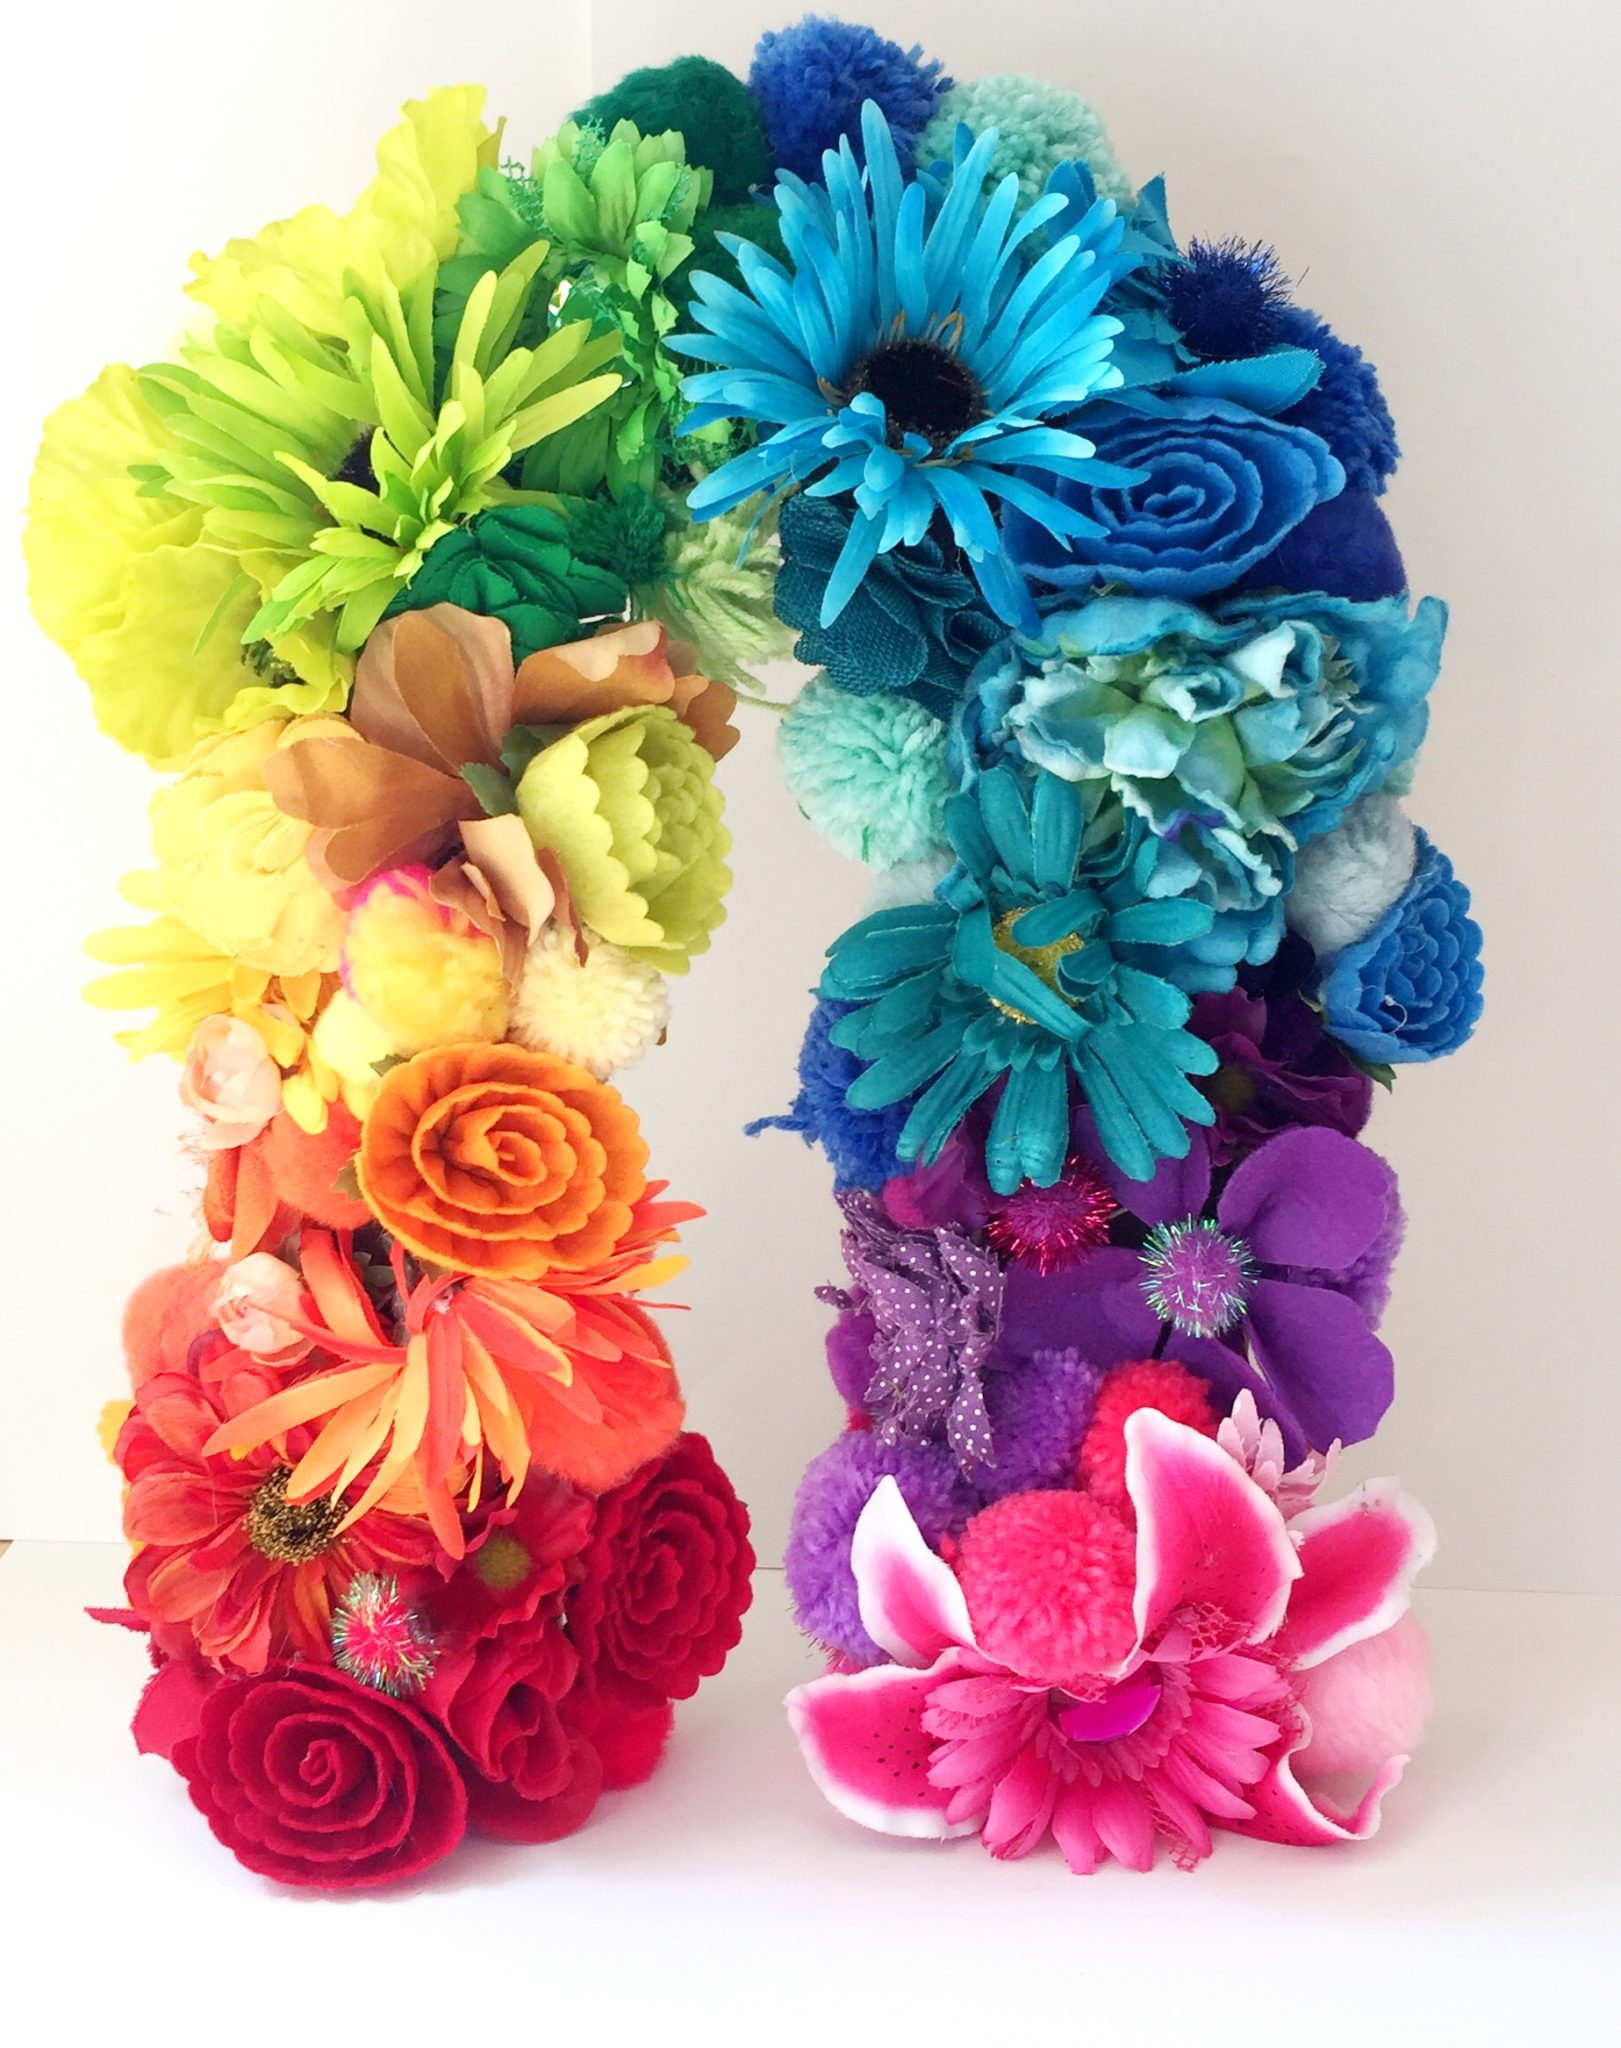 Rainbow made of faux flowers and pompoms by Jennifer Perkins